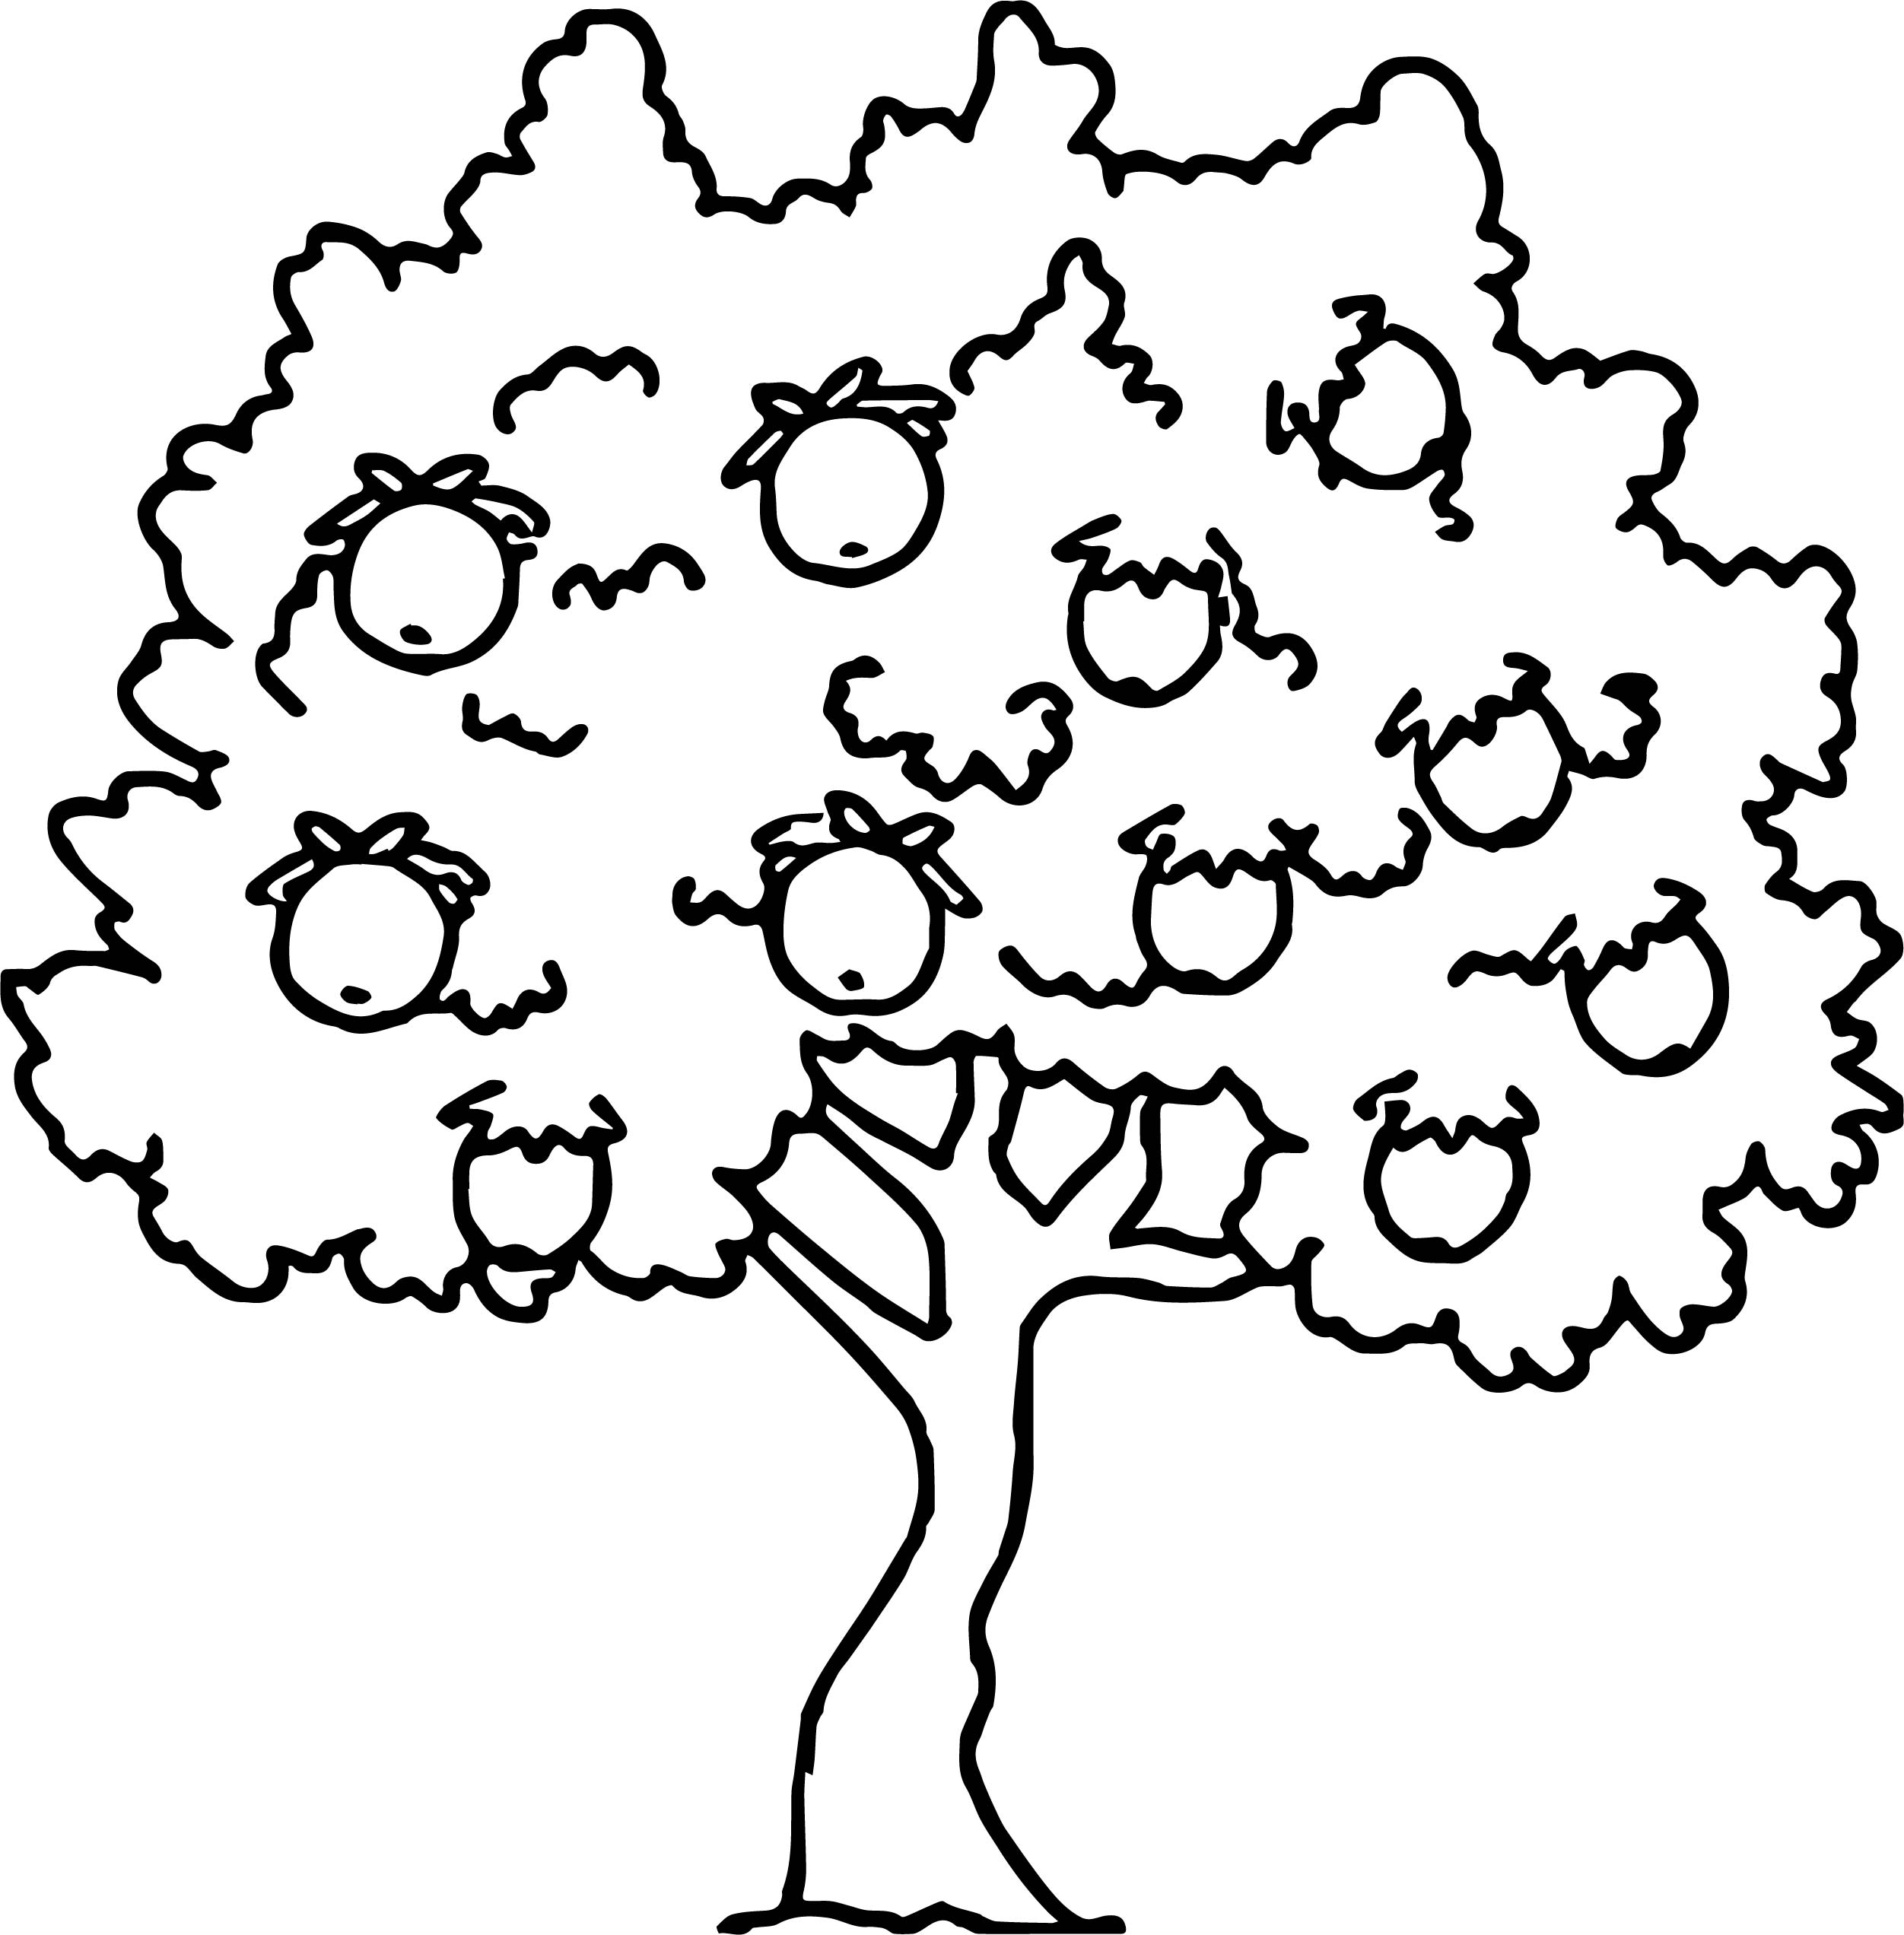 Strange Fruit Tree Coloring Page Stock Illustr Unknown Printable Of Apple Tree Coloring Page with Coloring Pages Apple orchard Download Download